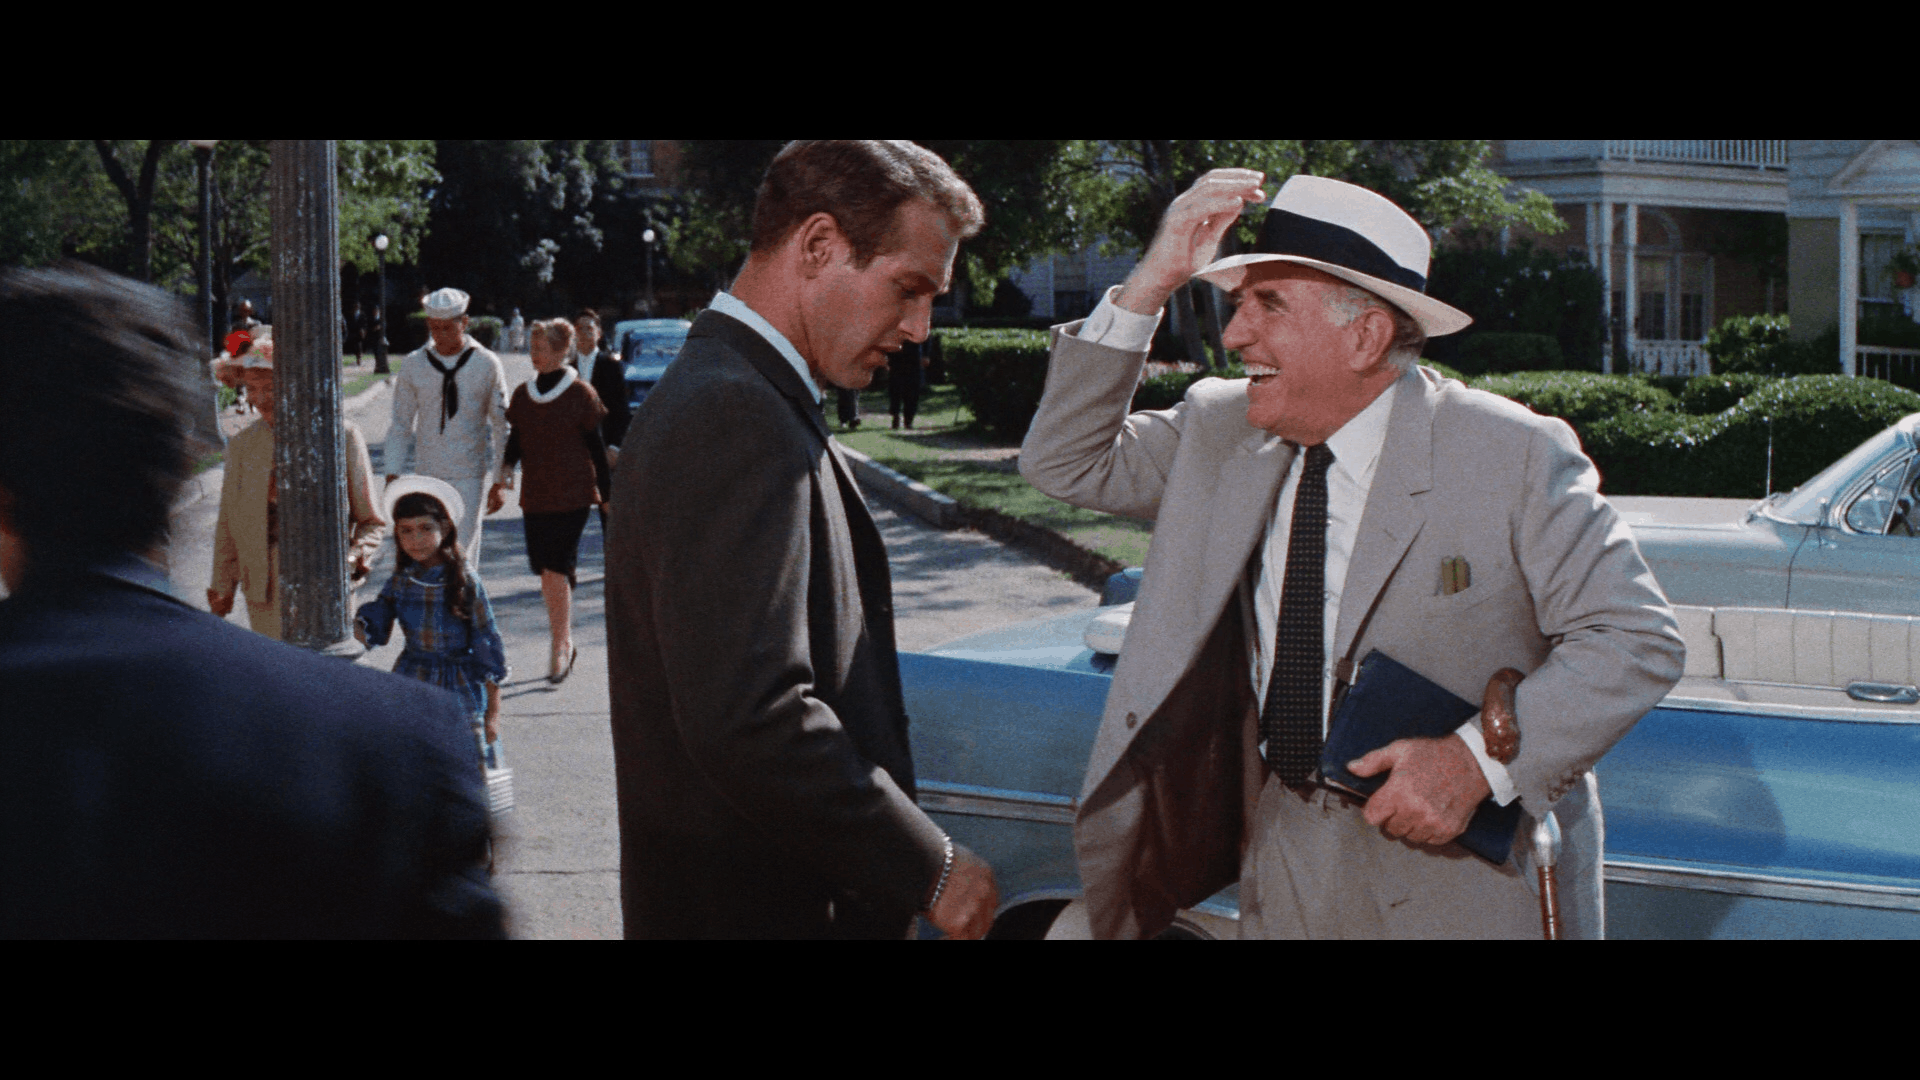 Sweet Bird of Youth is Peak Tennessee Williams [Warner Archive Blu-ray review] 17